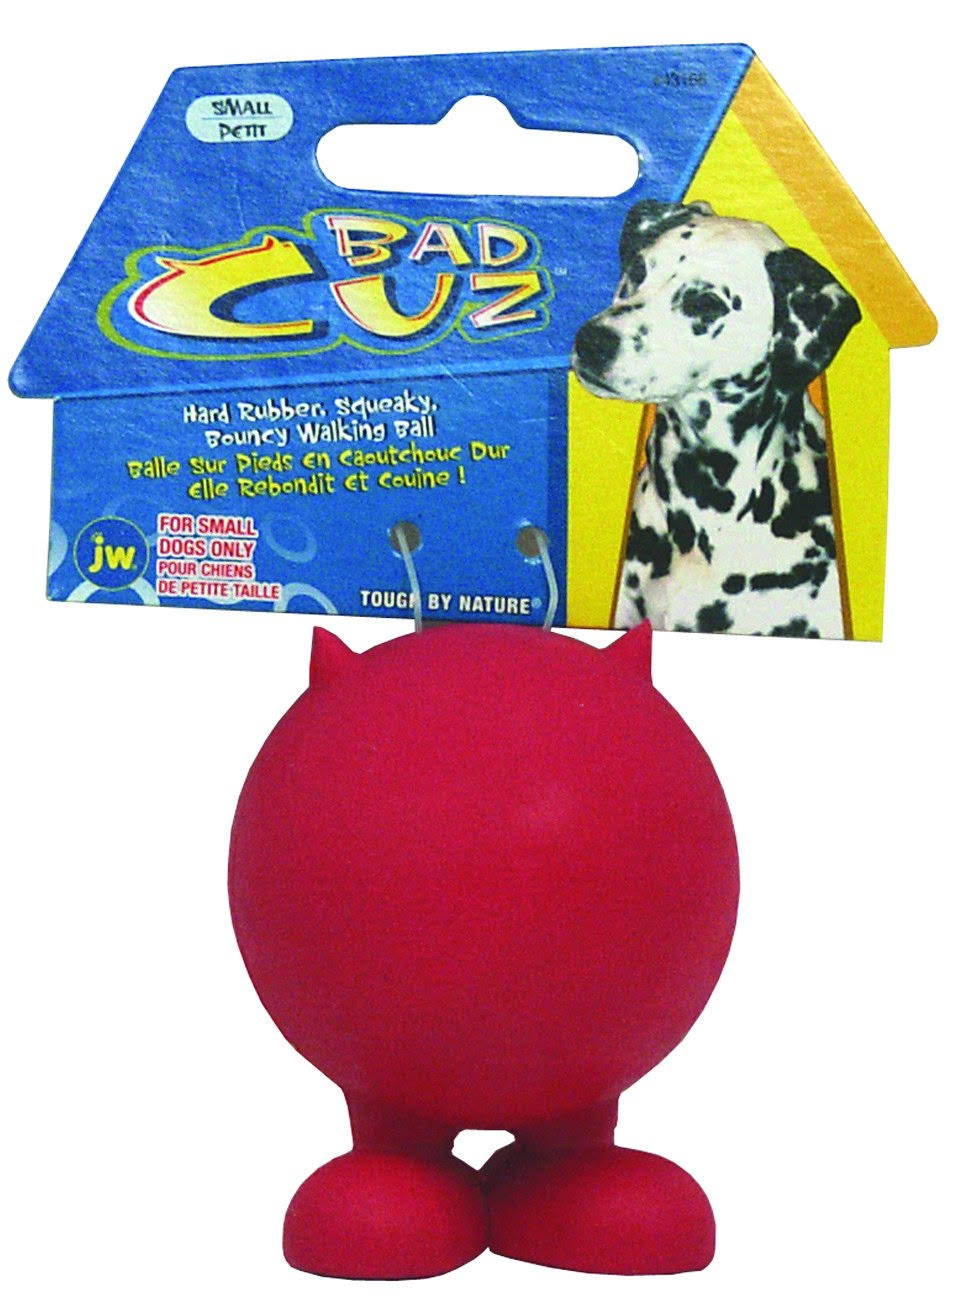 JW Pet Company Bad Cuz Dog Toy - Small